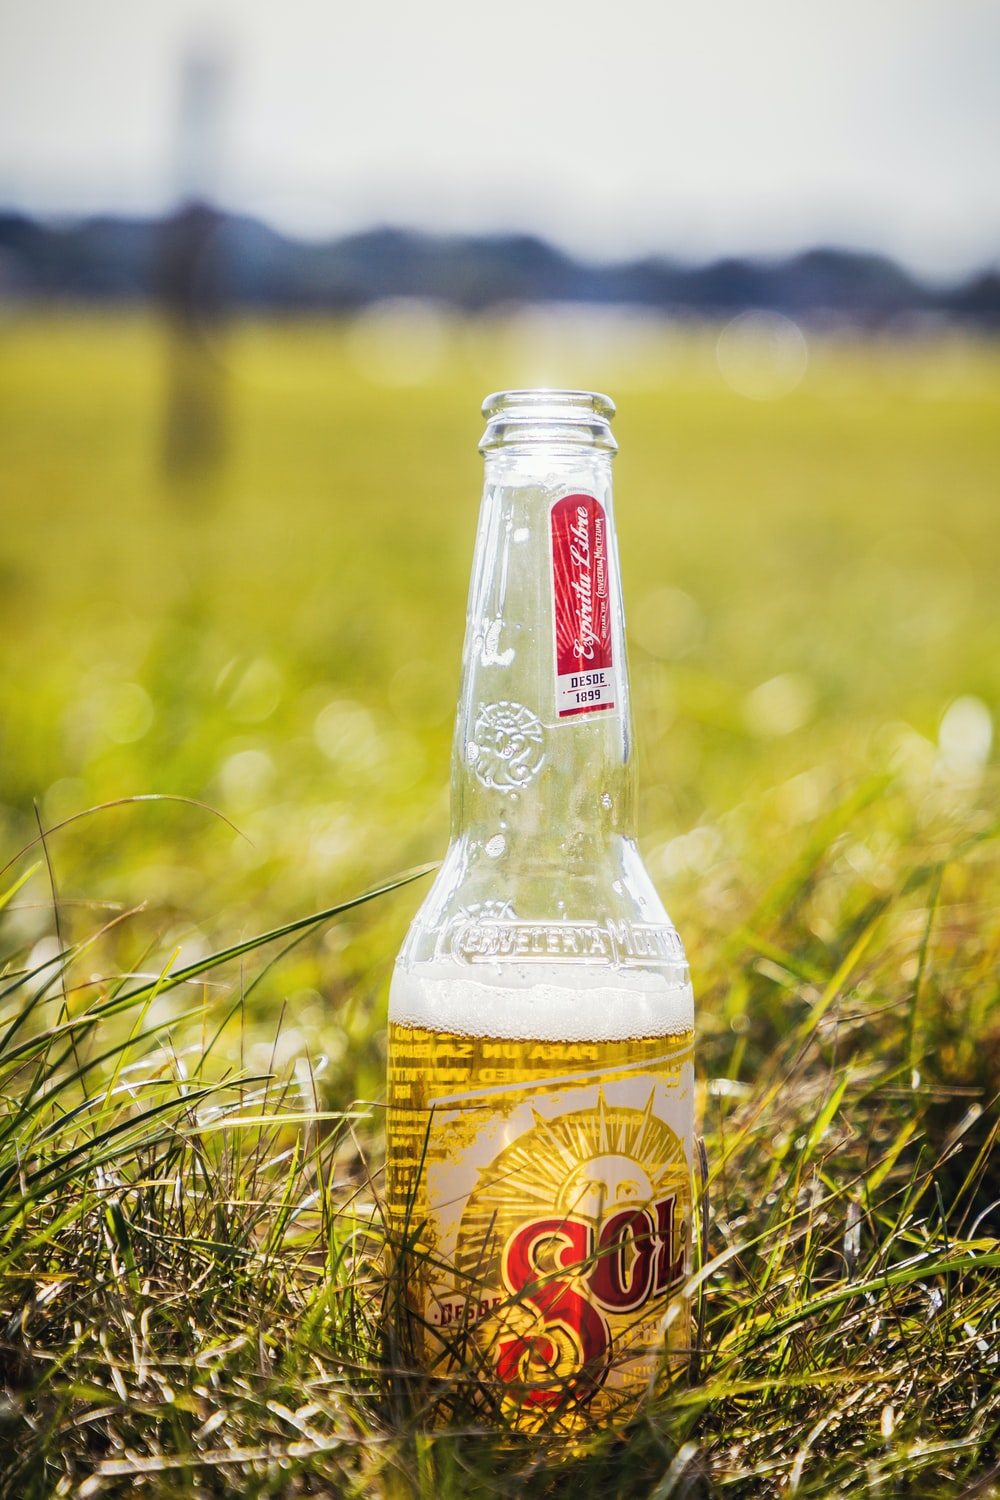 clear glass bottle on green grass during daytime